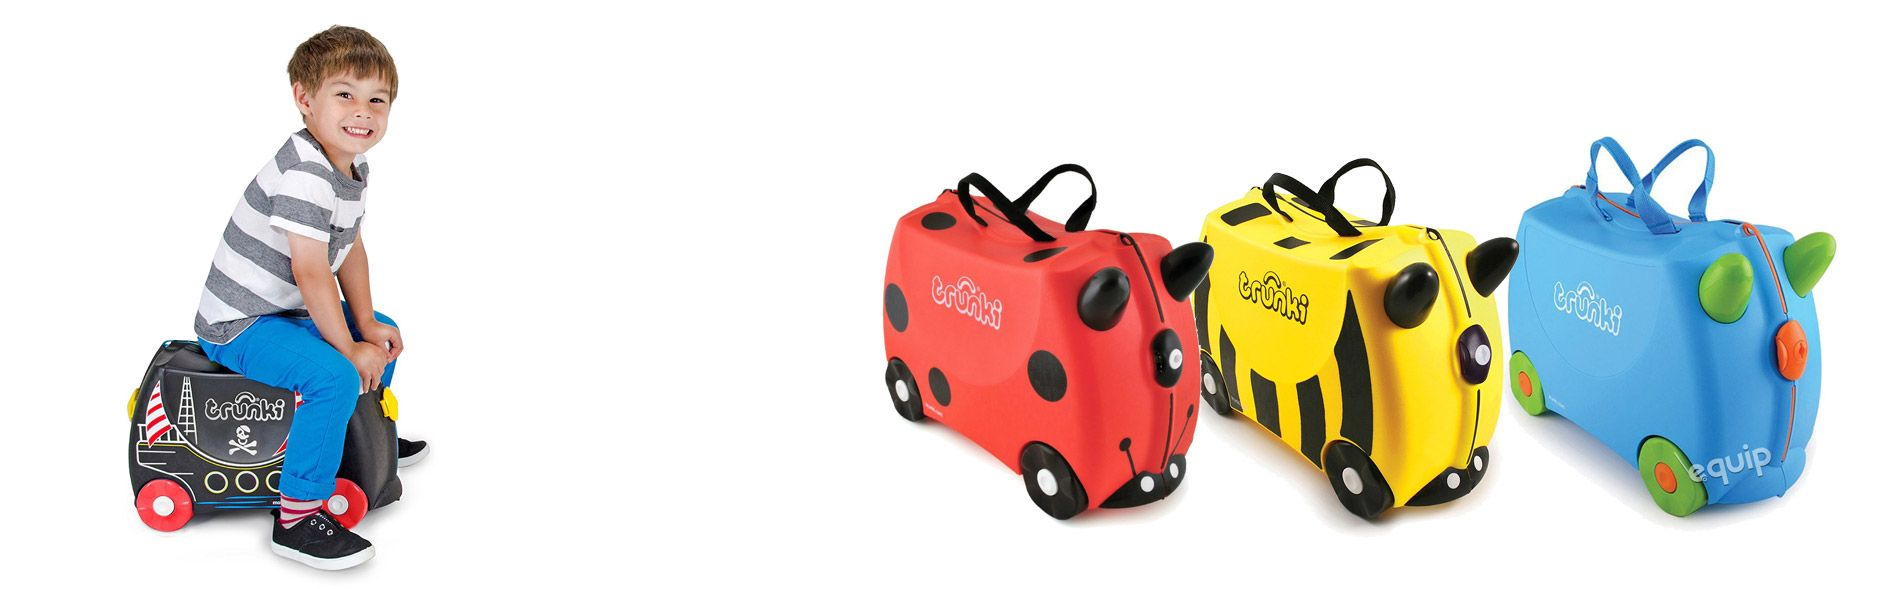 Trunki Male stvari